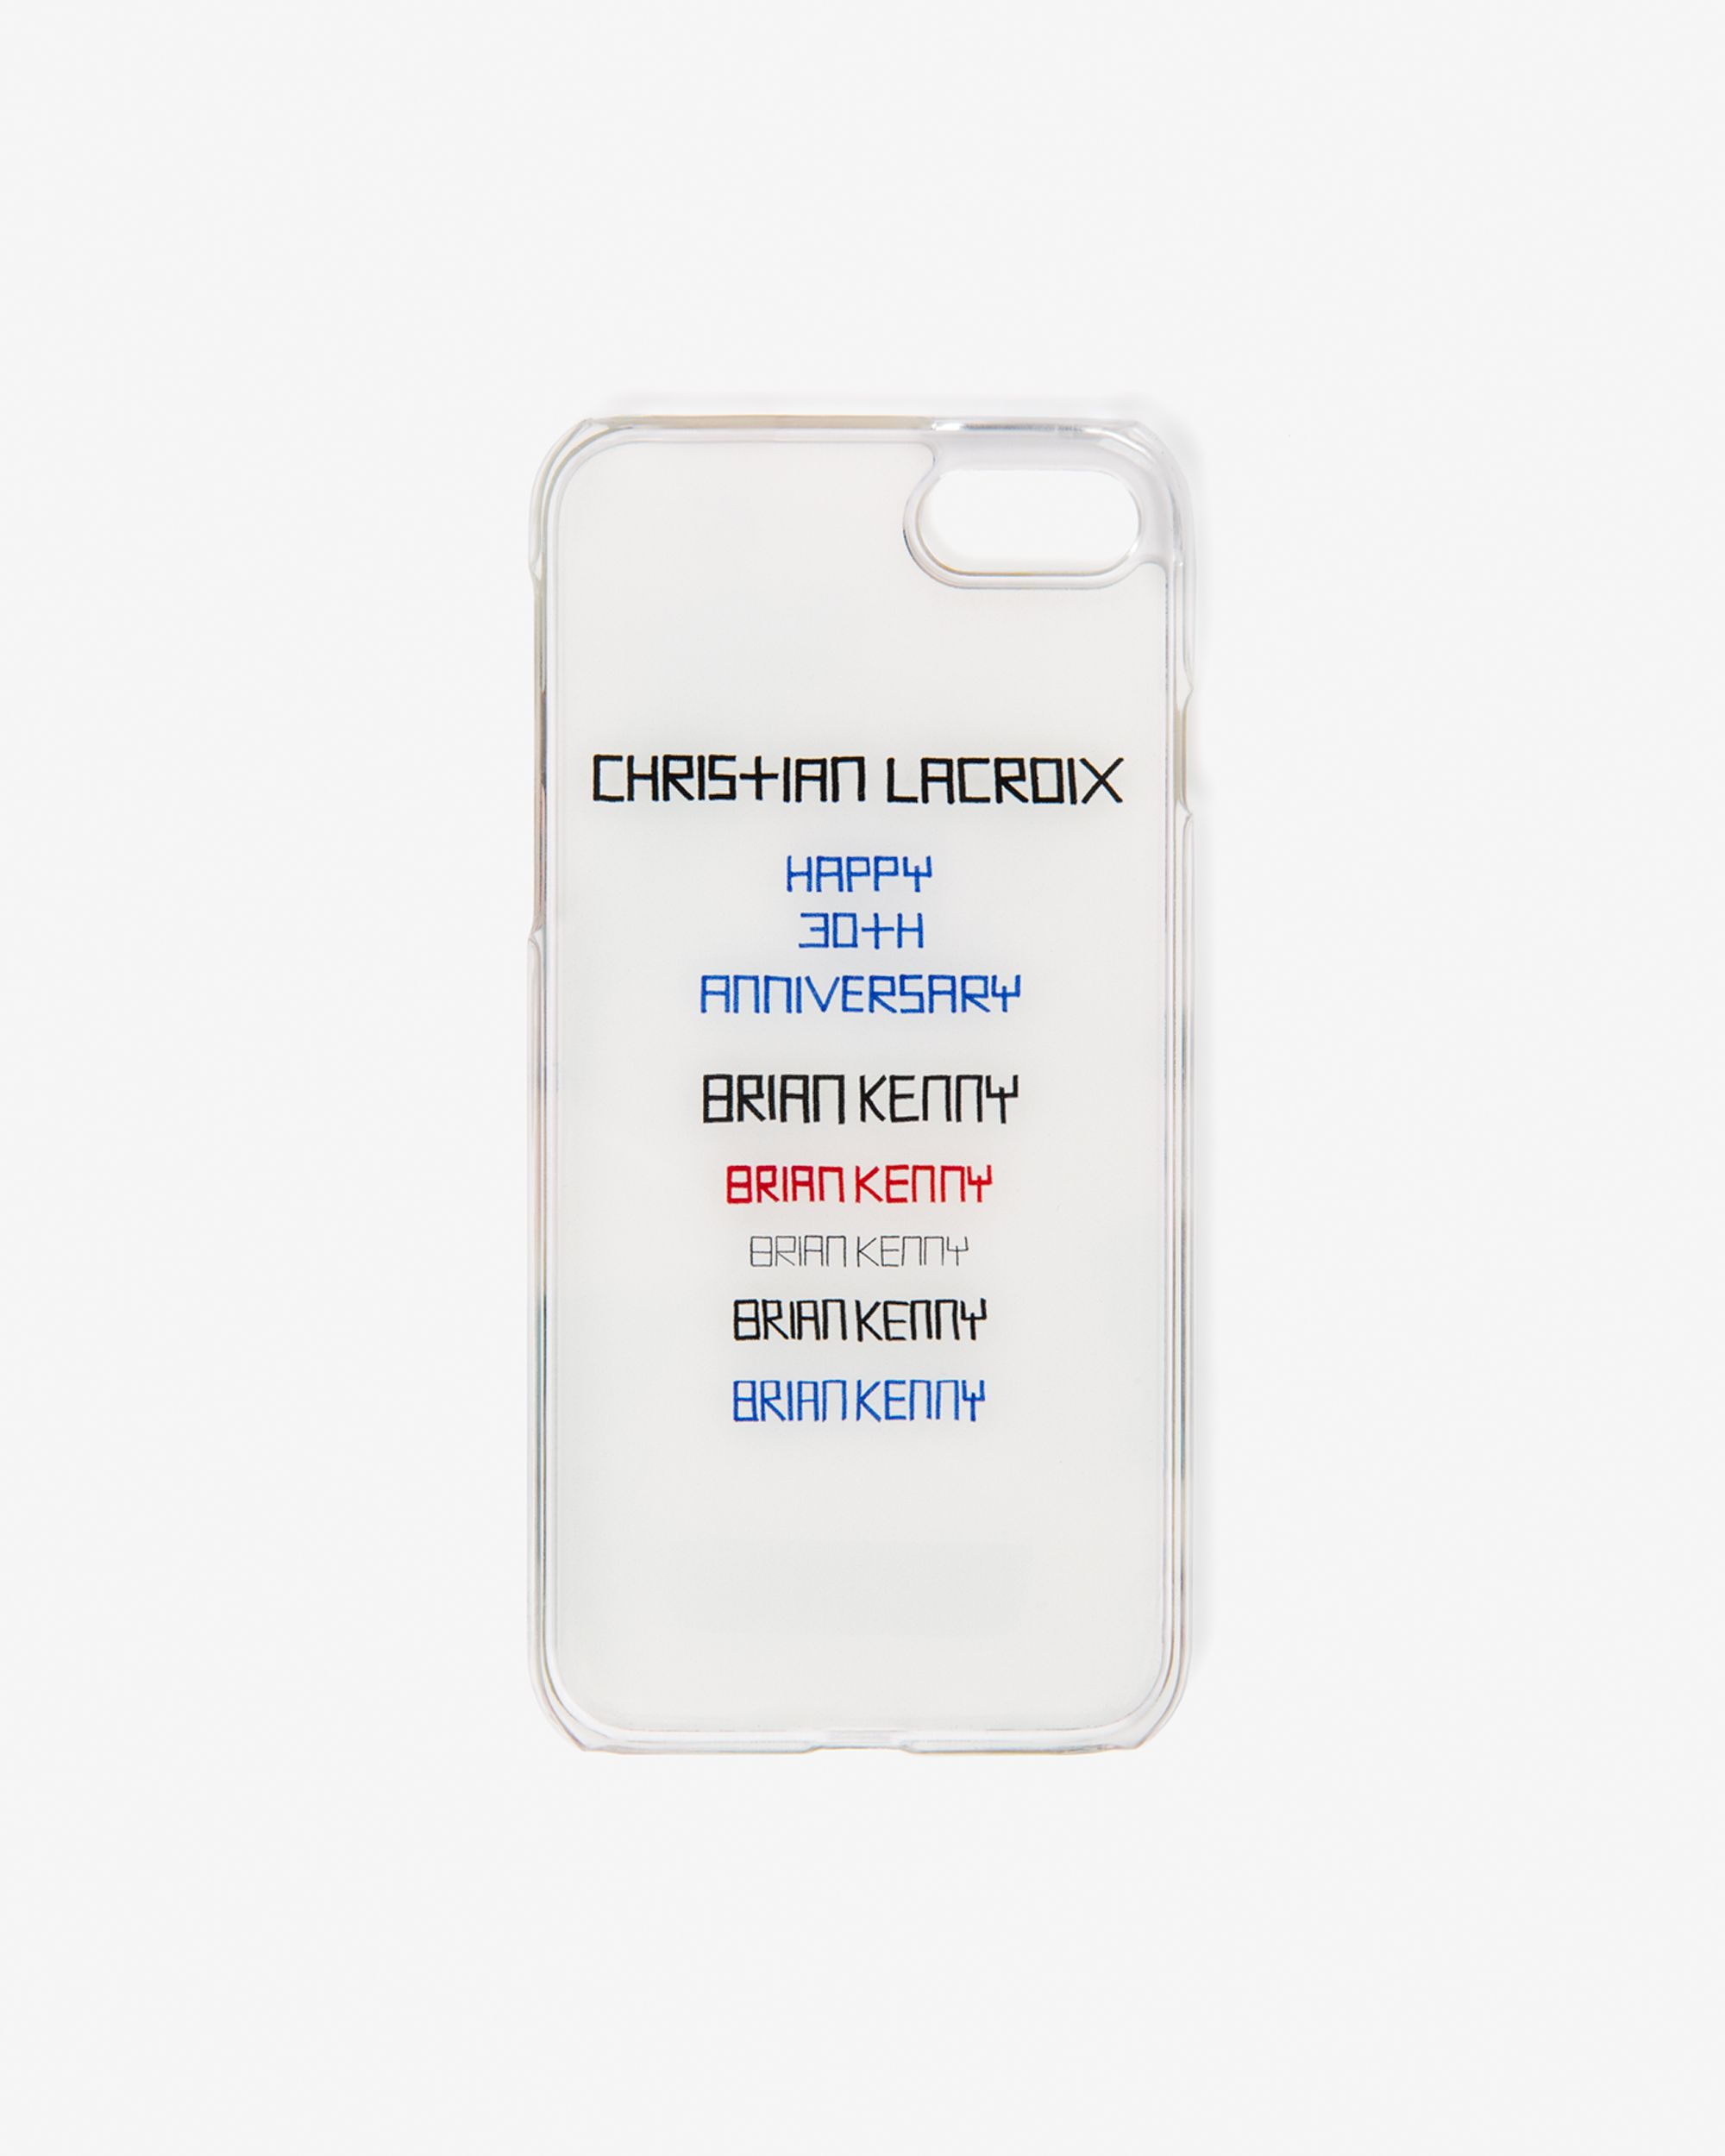 Lacroix_30_ans_CL_x_BK_Iphone_case_back_5a0492434243f.jpg